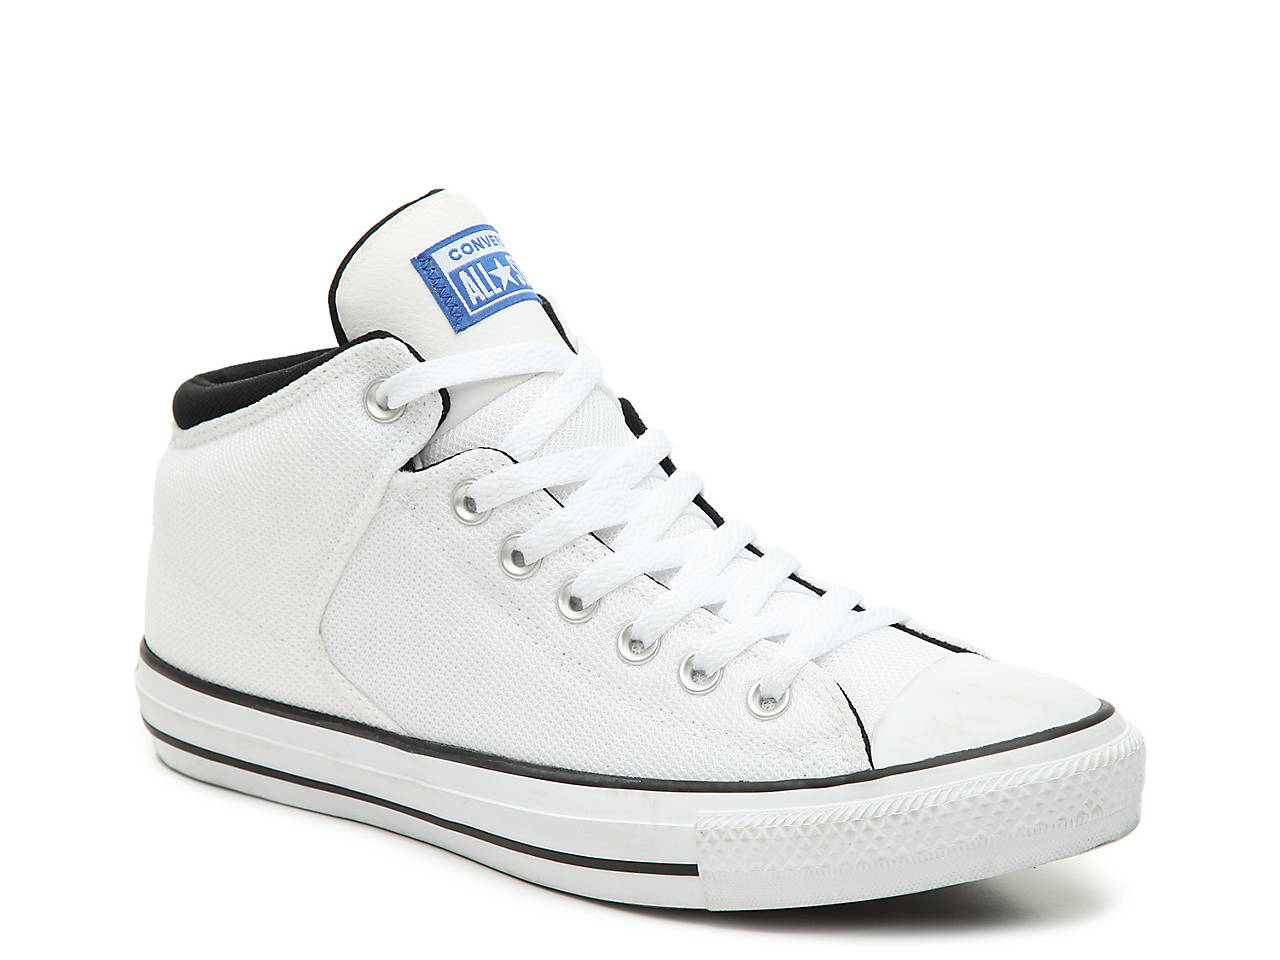 8ebaf76f Converse Chuck Taylor All Star Hi Street High-Top Sneaker - Men's ...